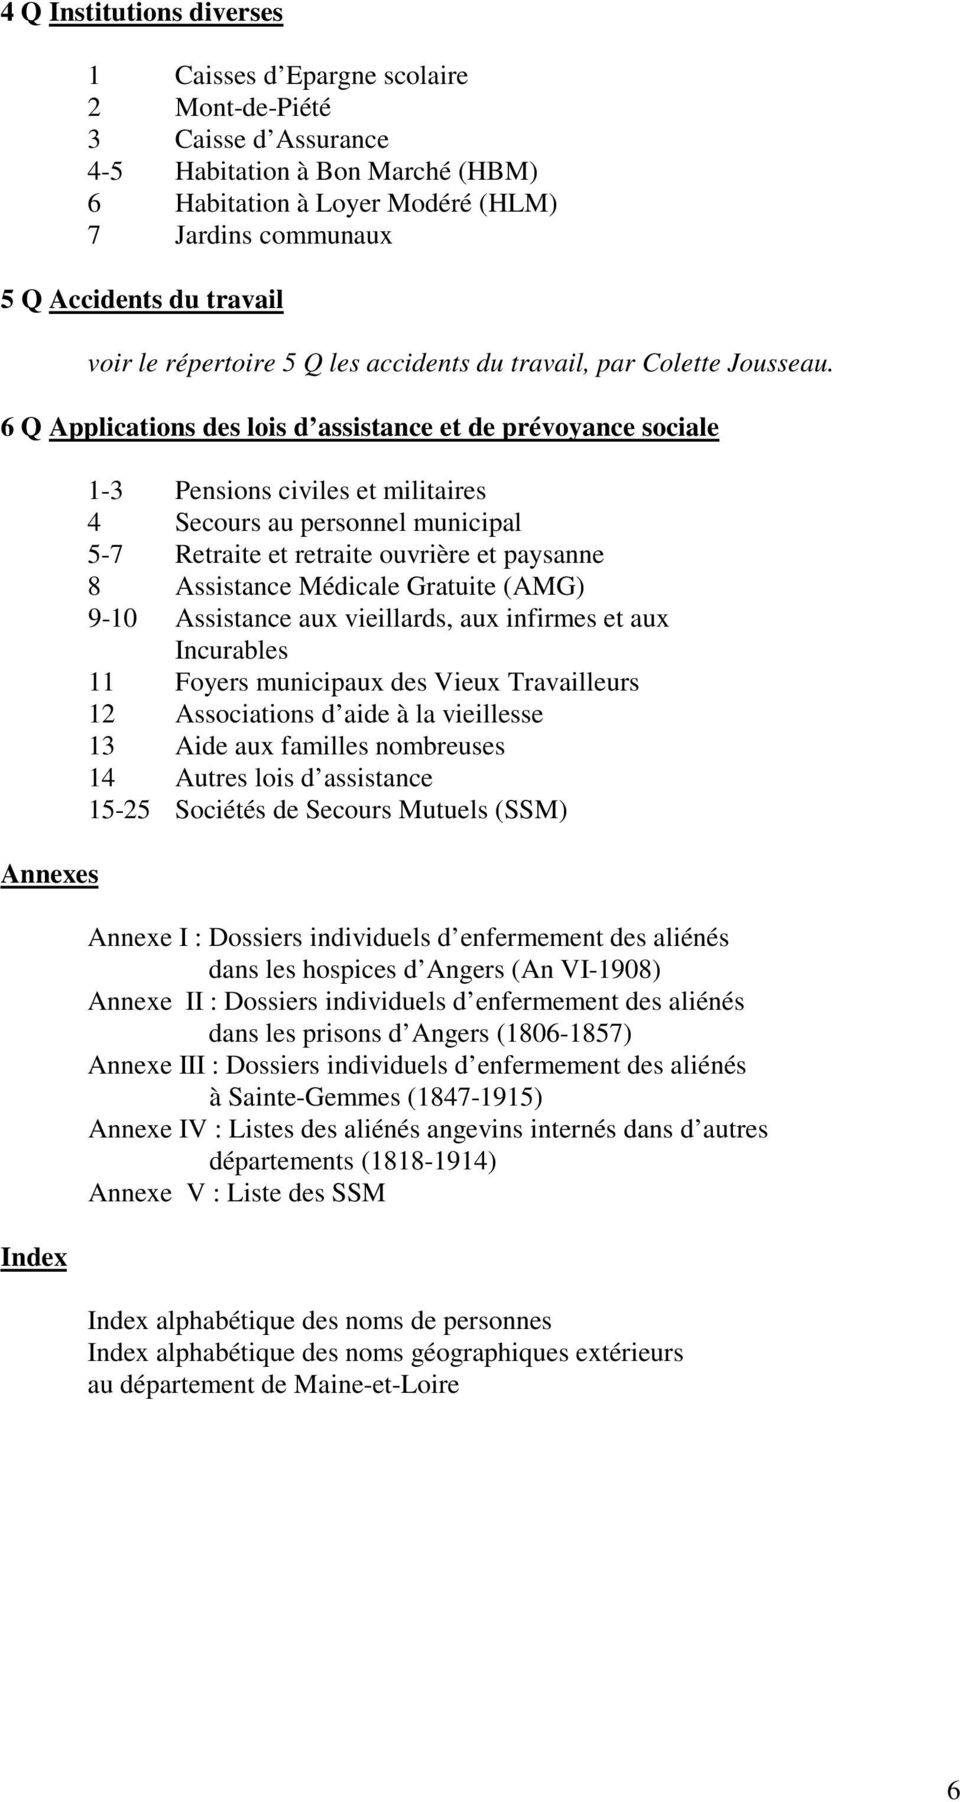 6 Q Applications des lois d assistance et de prévoyance sociale Annexes Index 1-3 Pensions civiles et militaires 4 Secours au personnel municipal 5-7 Retraite et retraite ouvrière et paysanne 8